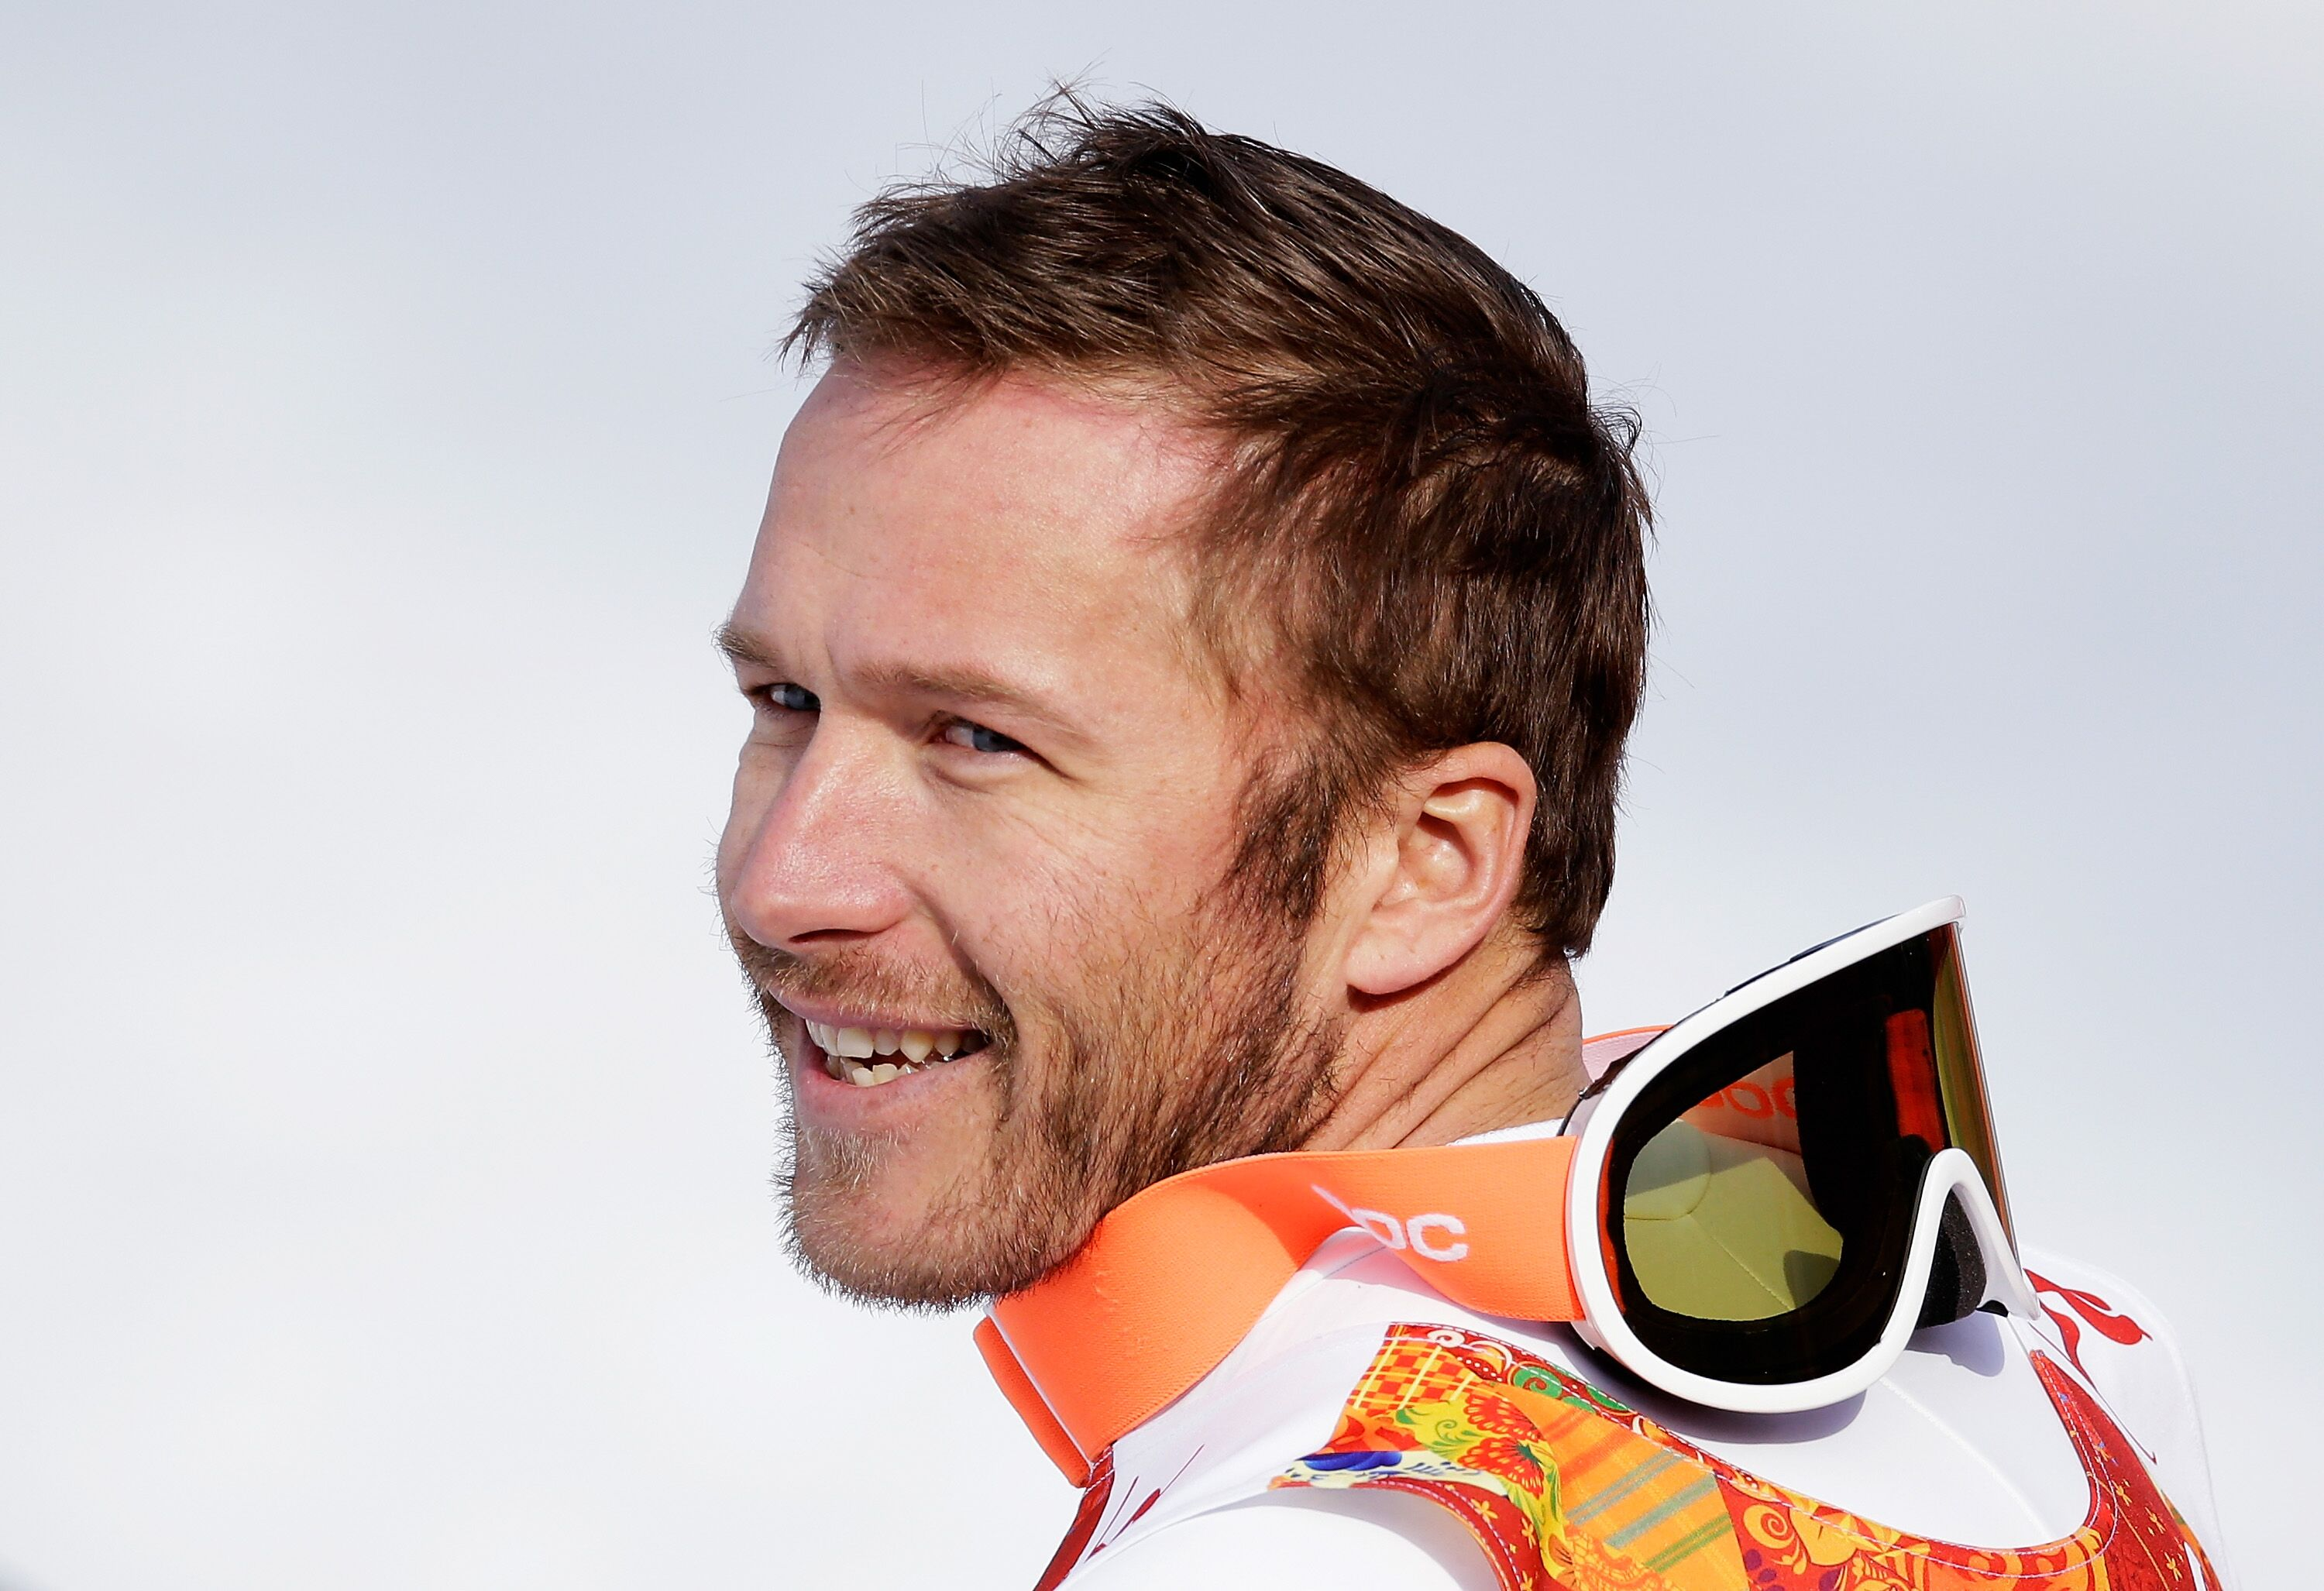 Bode Miller at the Sochi Winter Olympics on February 16, 2014, in Russia | Photo: Ezra Shaw/Getty Images